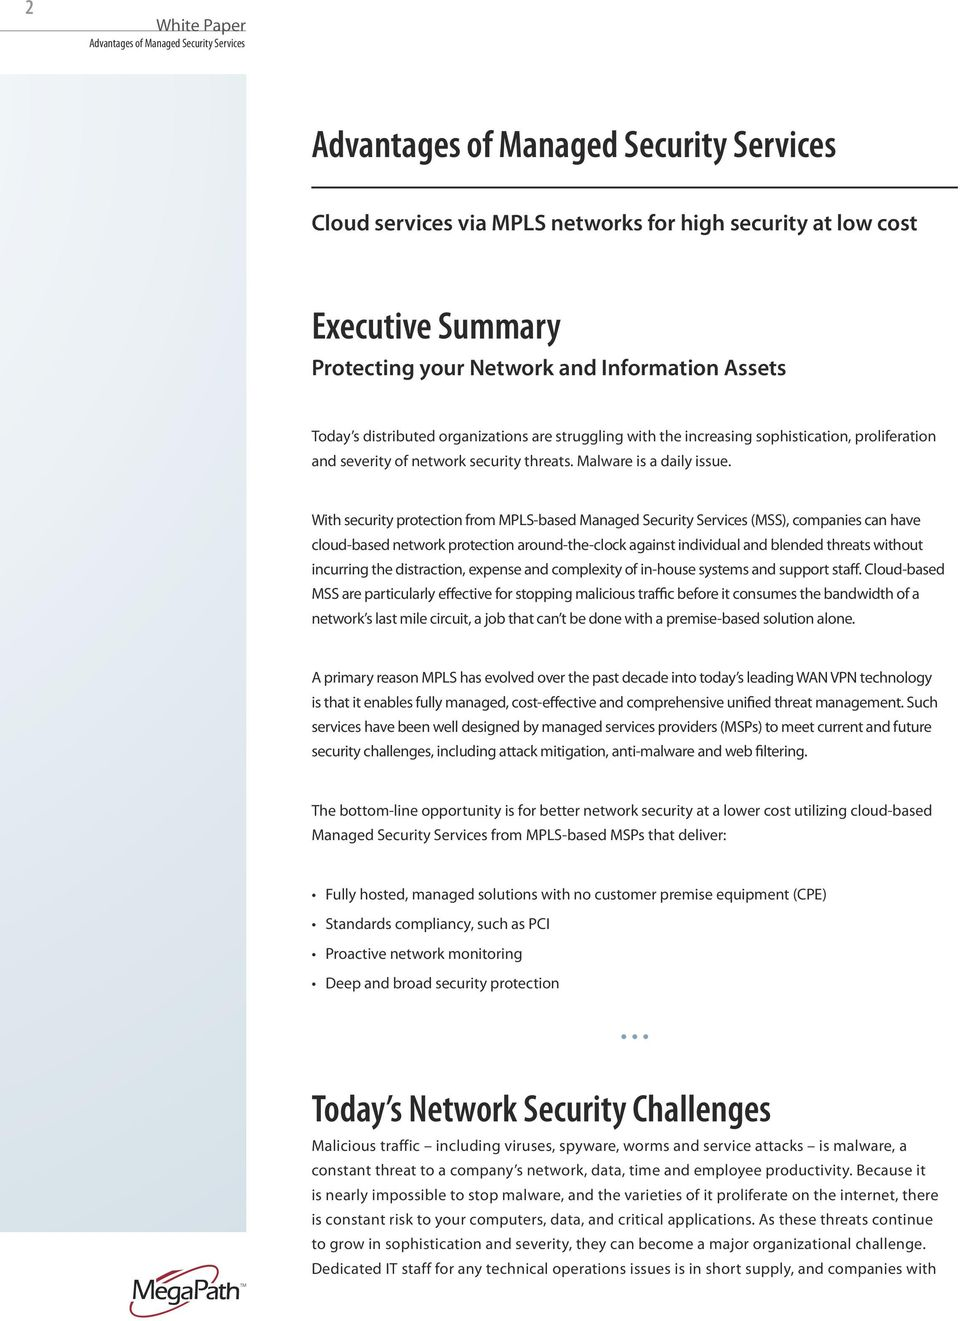 With security protection from MPLS-based Managed Security Services (MSS), companies can have cloud-based network protection around-the-clock against individual and blended threats without incurring